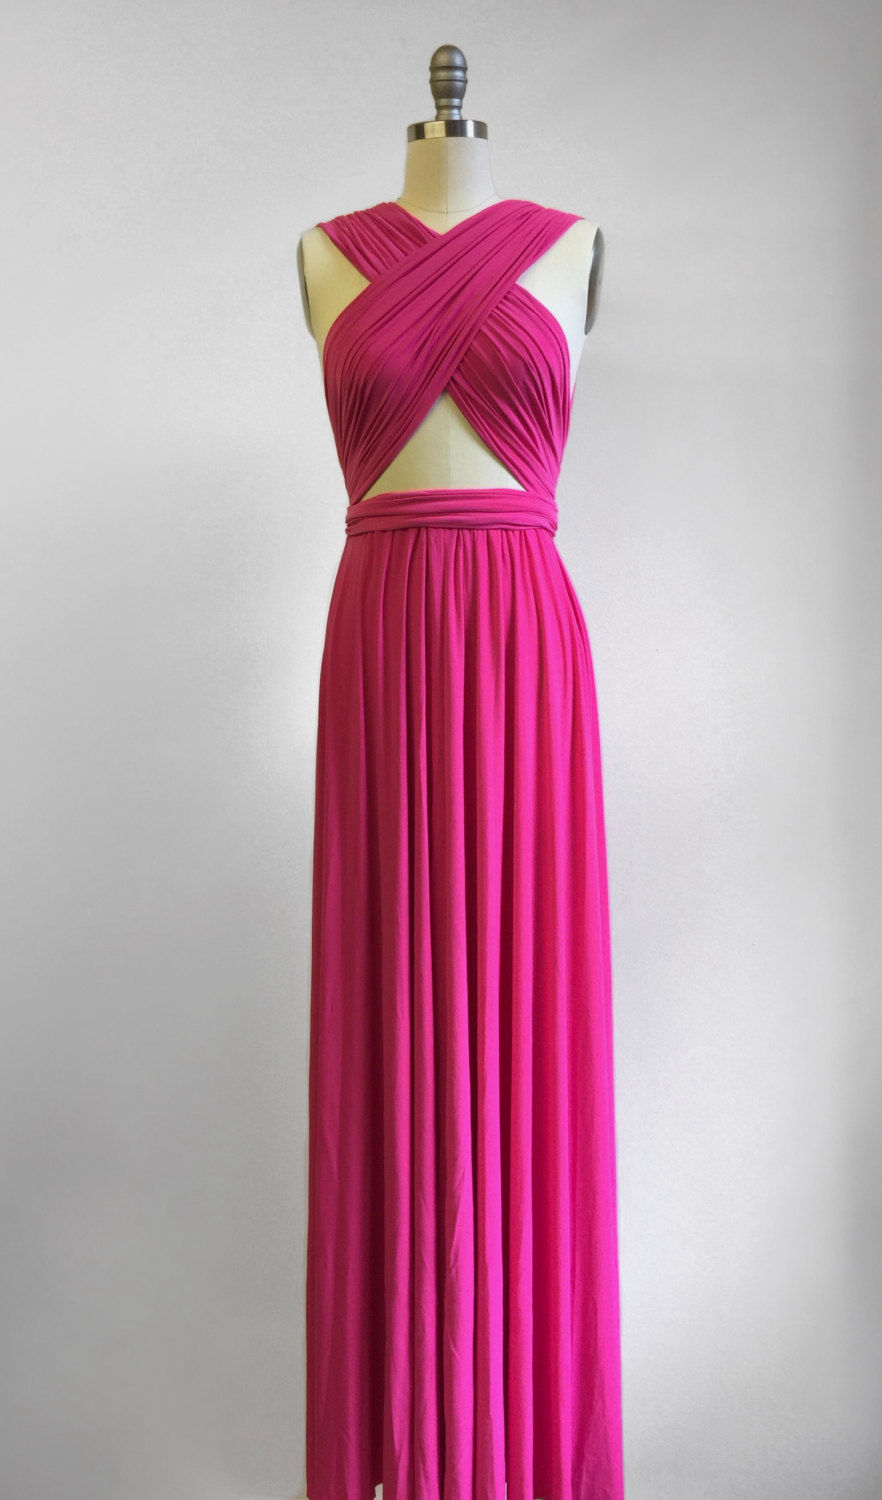 Hot Pink Long Floor Length Wedding Dress Maxi Fuchsia Infinity Party Evening Bridesmaid Dresses